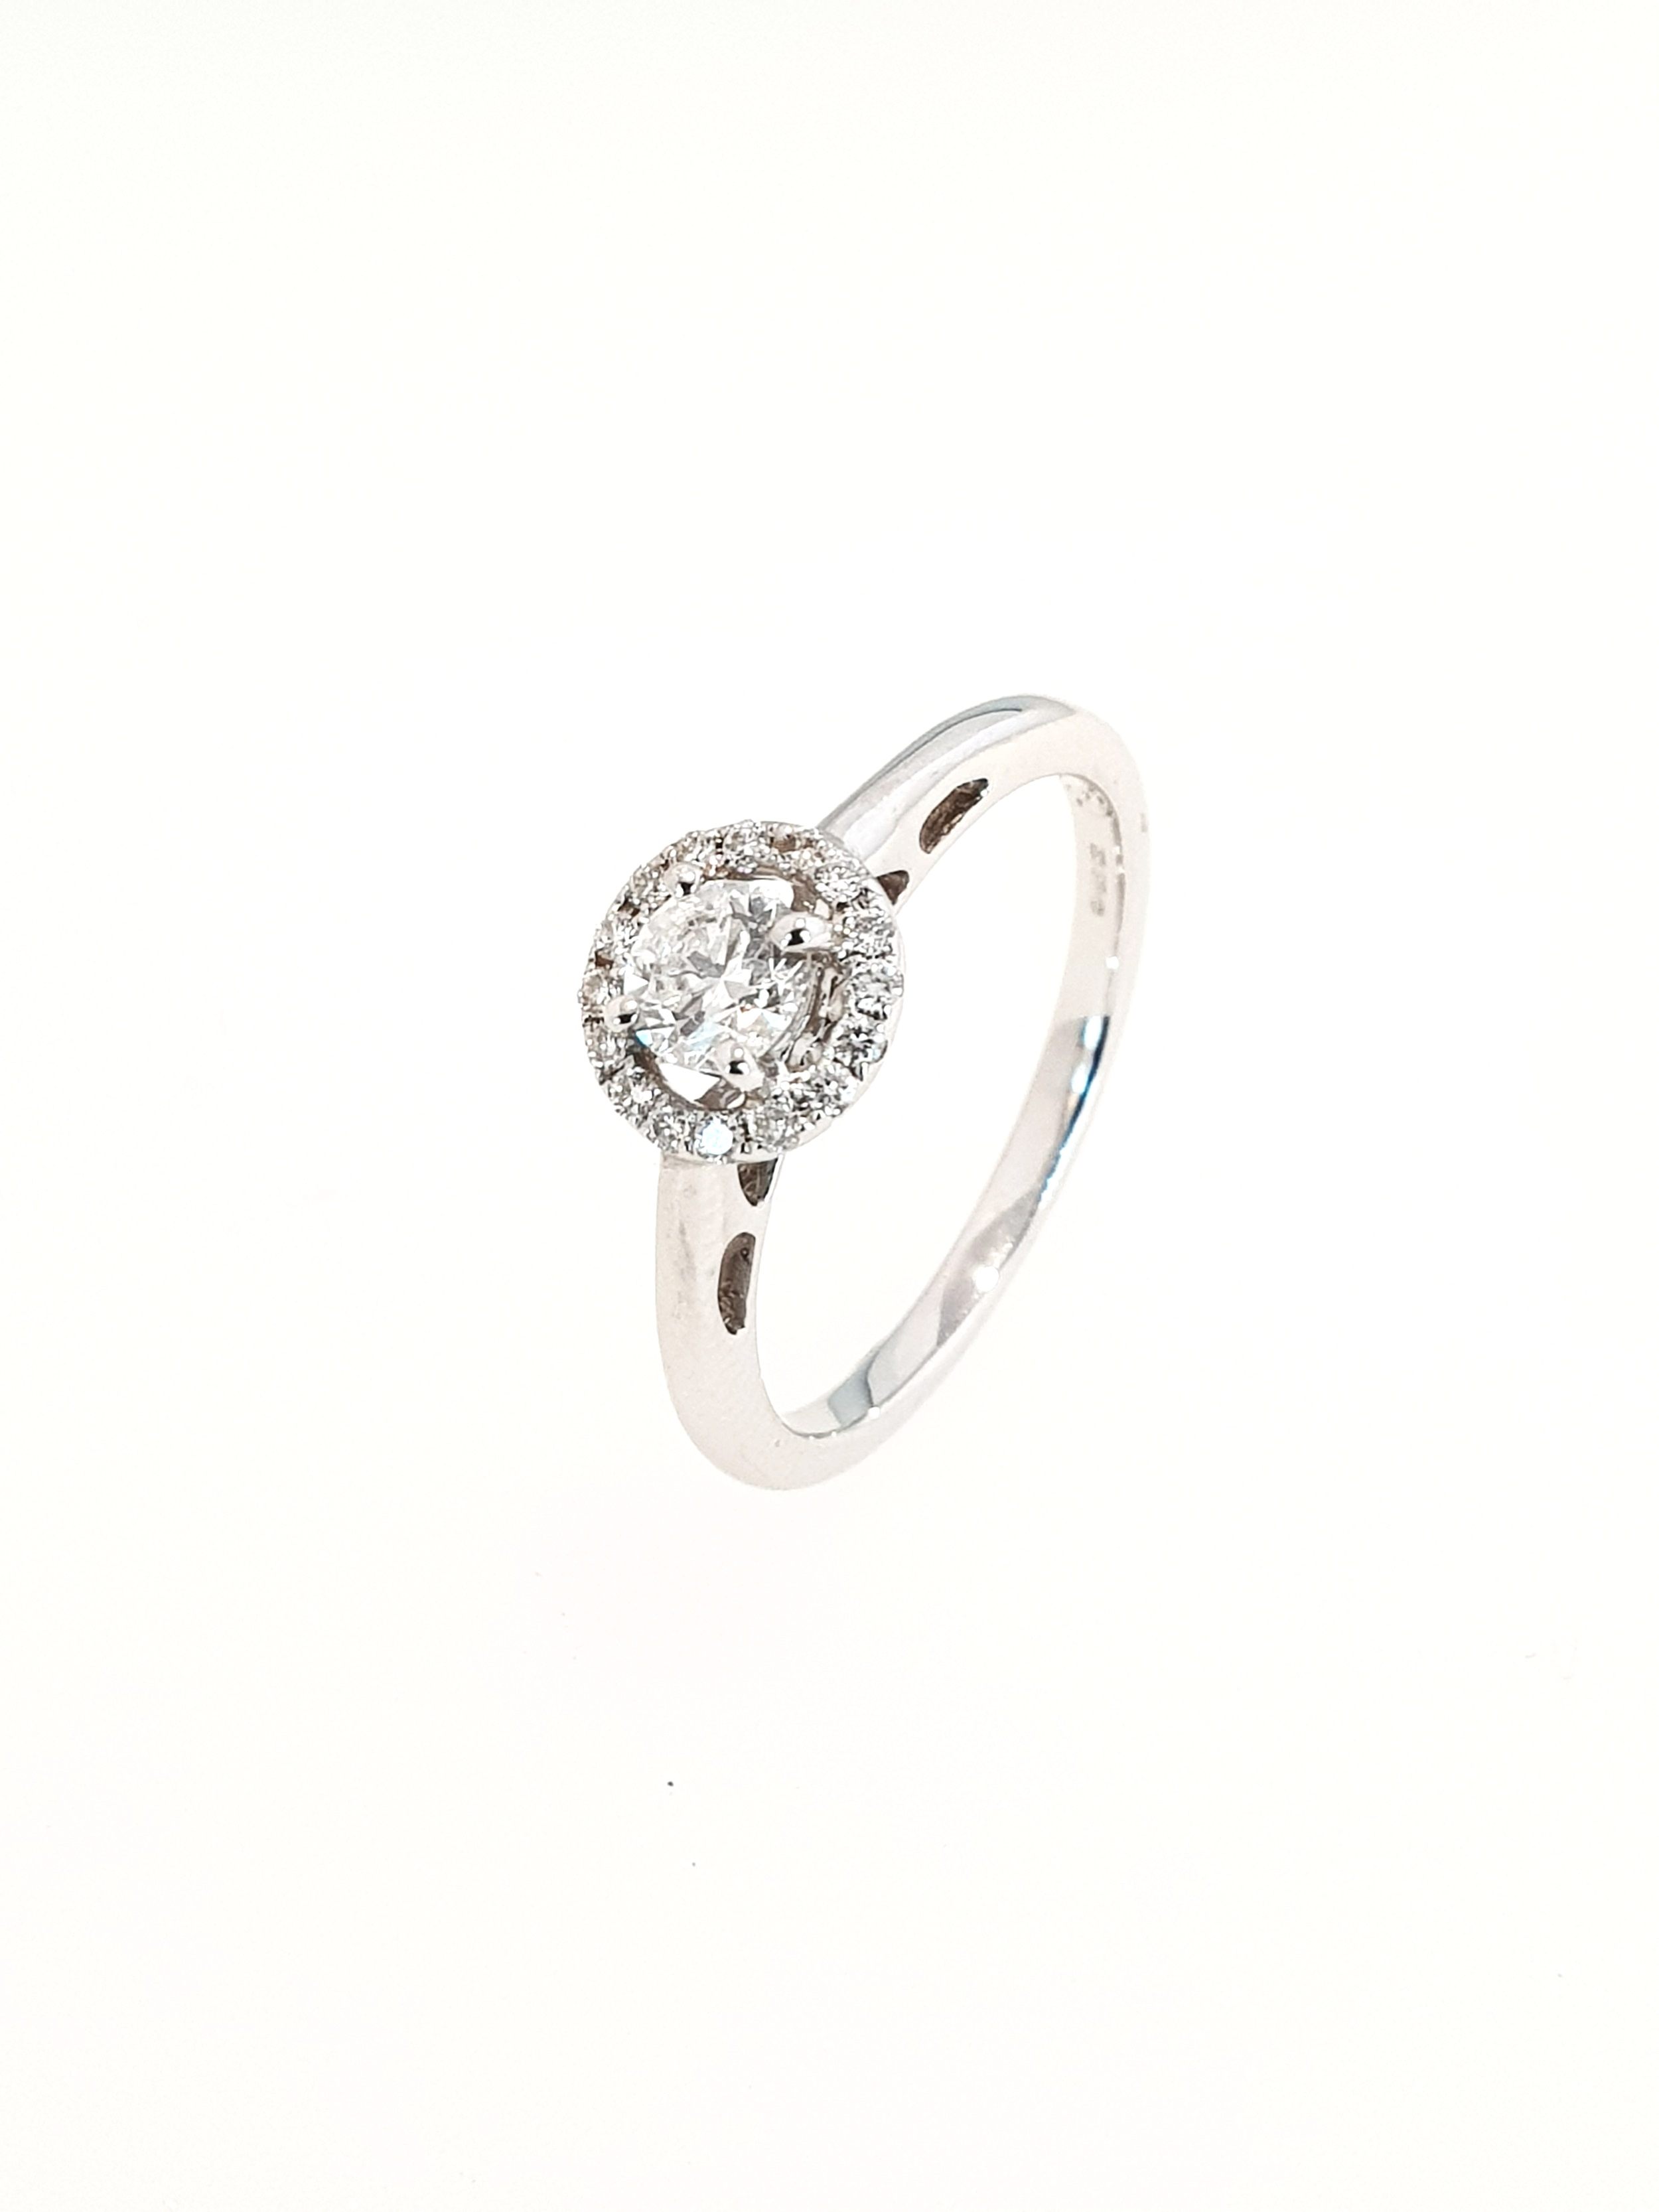 18ct White Gold Diamond Halo Ring  SOLD   TCW: .34ct, G, Si1  Stock Code: N8906  £1275